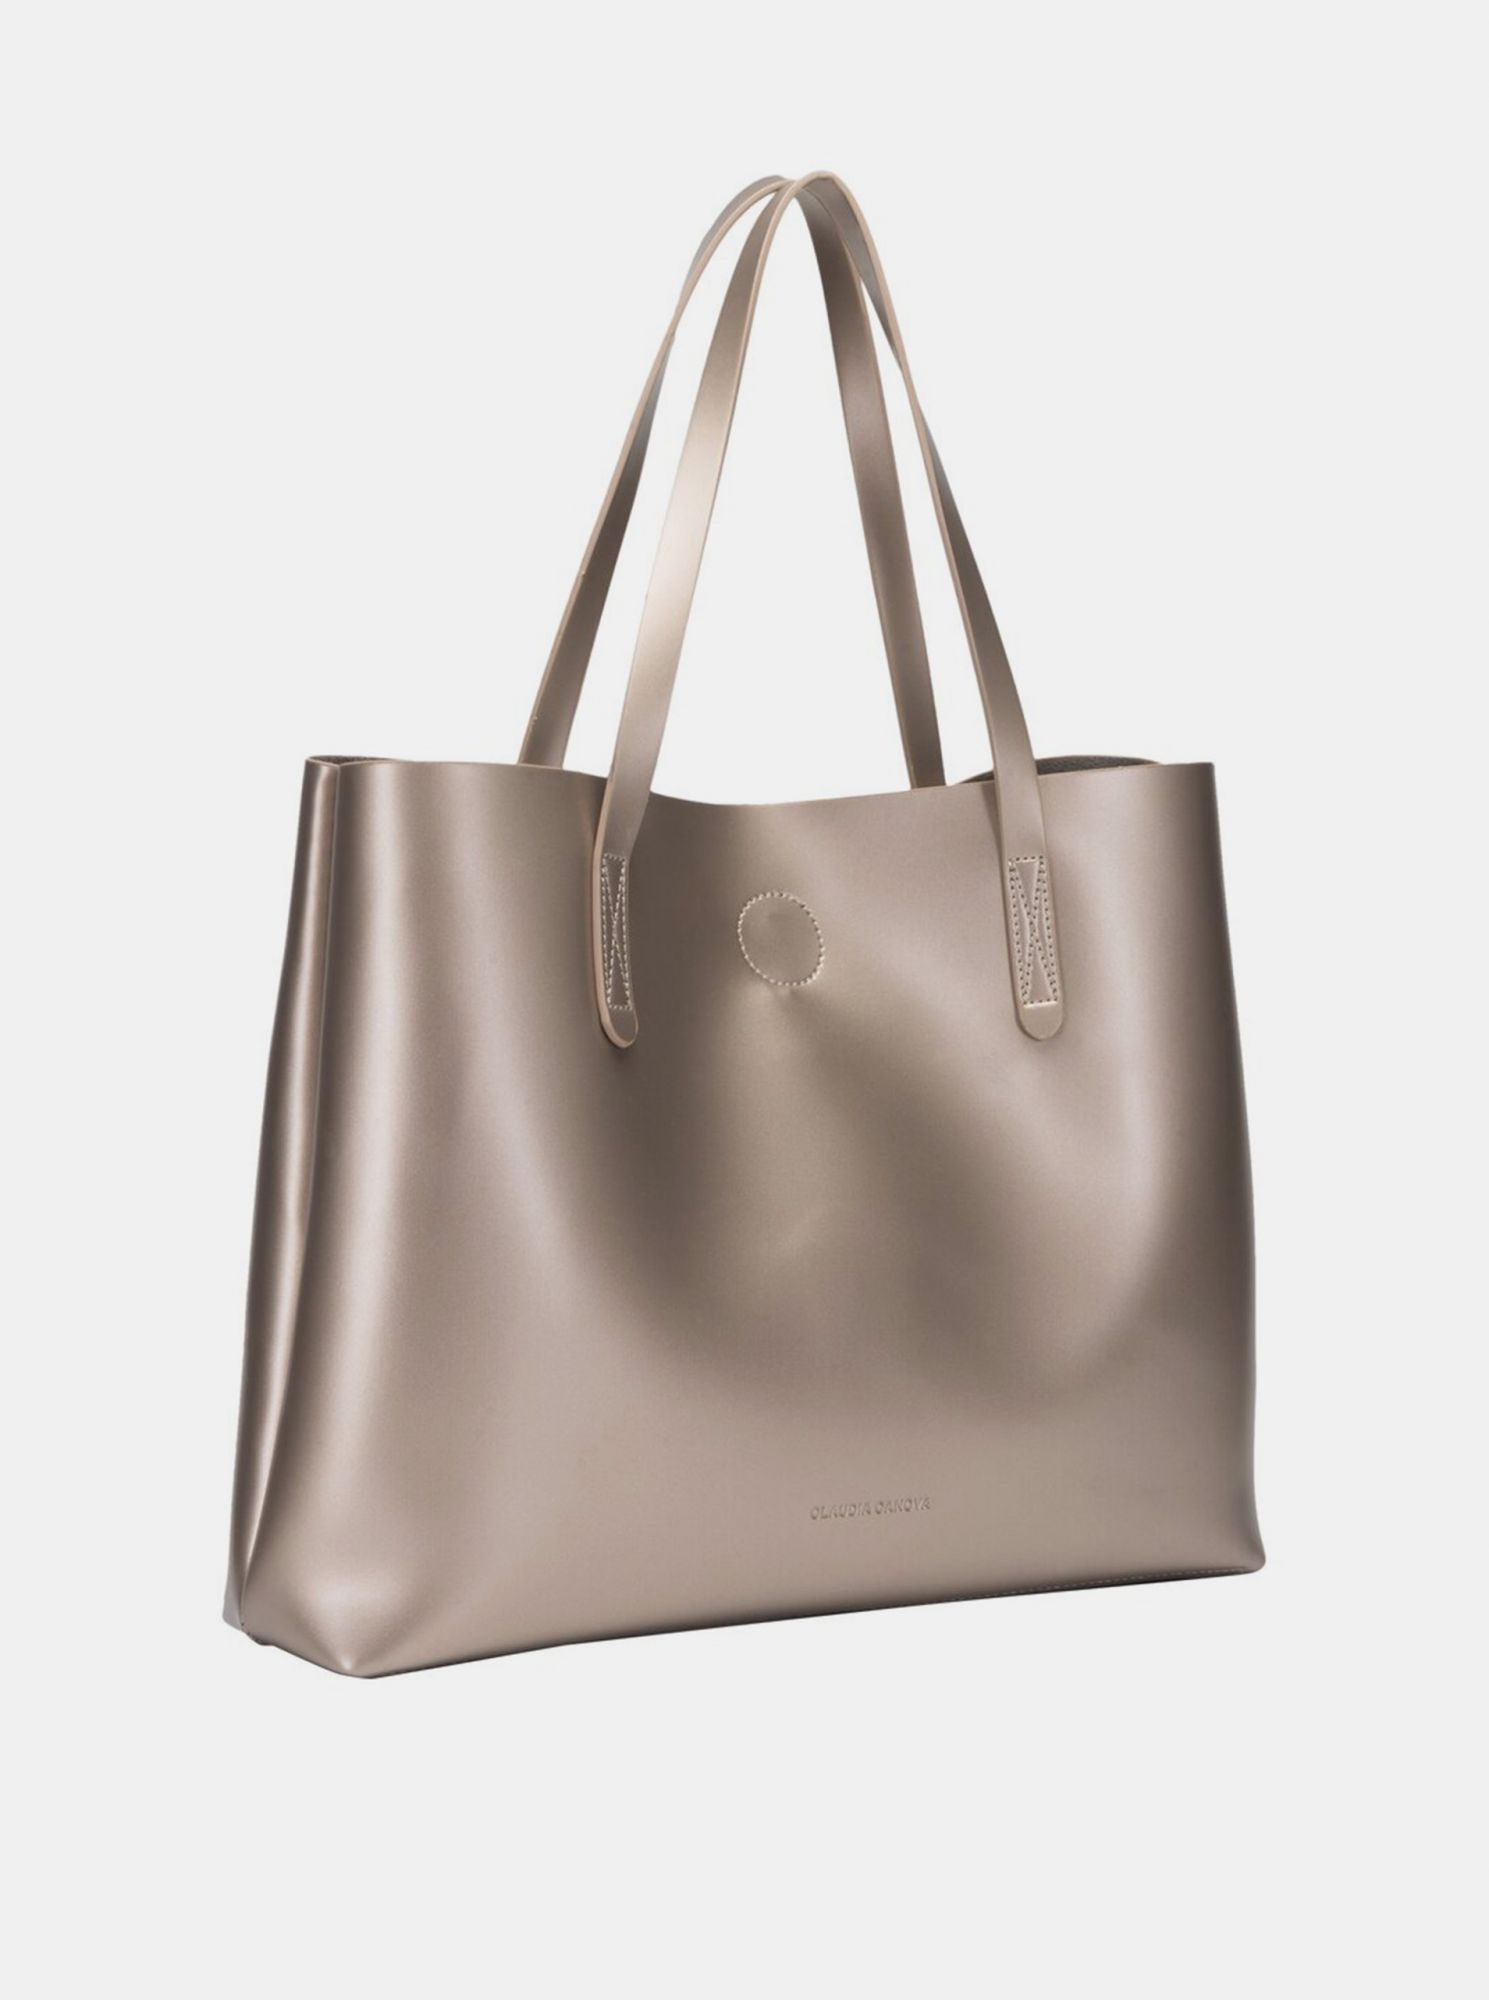 Shopper in gold color with a removable Claudia Canova case